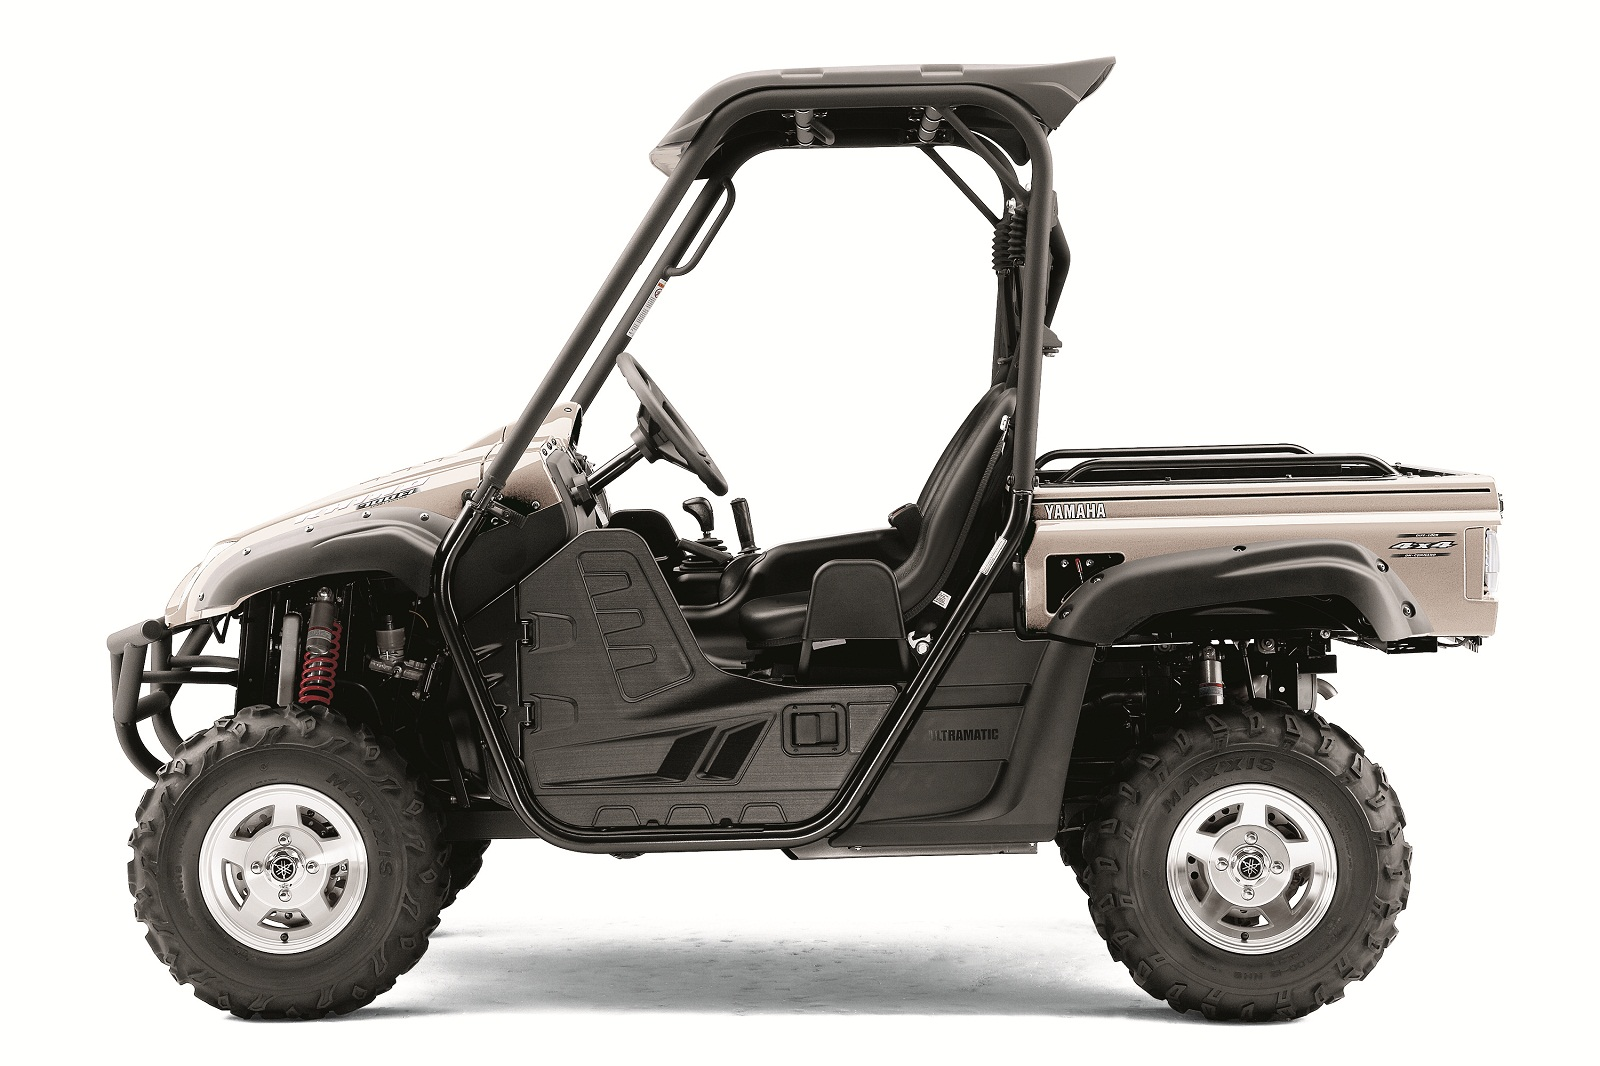 2012 Yamaha Rhino 700 FI Auto  4x4 Sport Edition | Top Speed